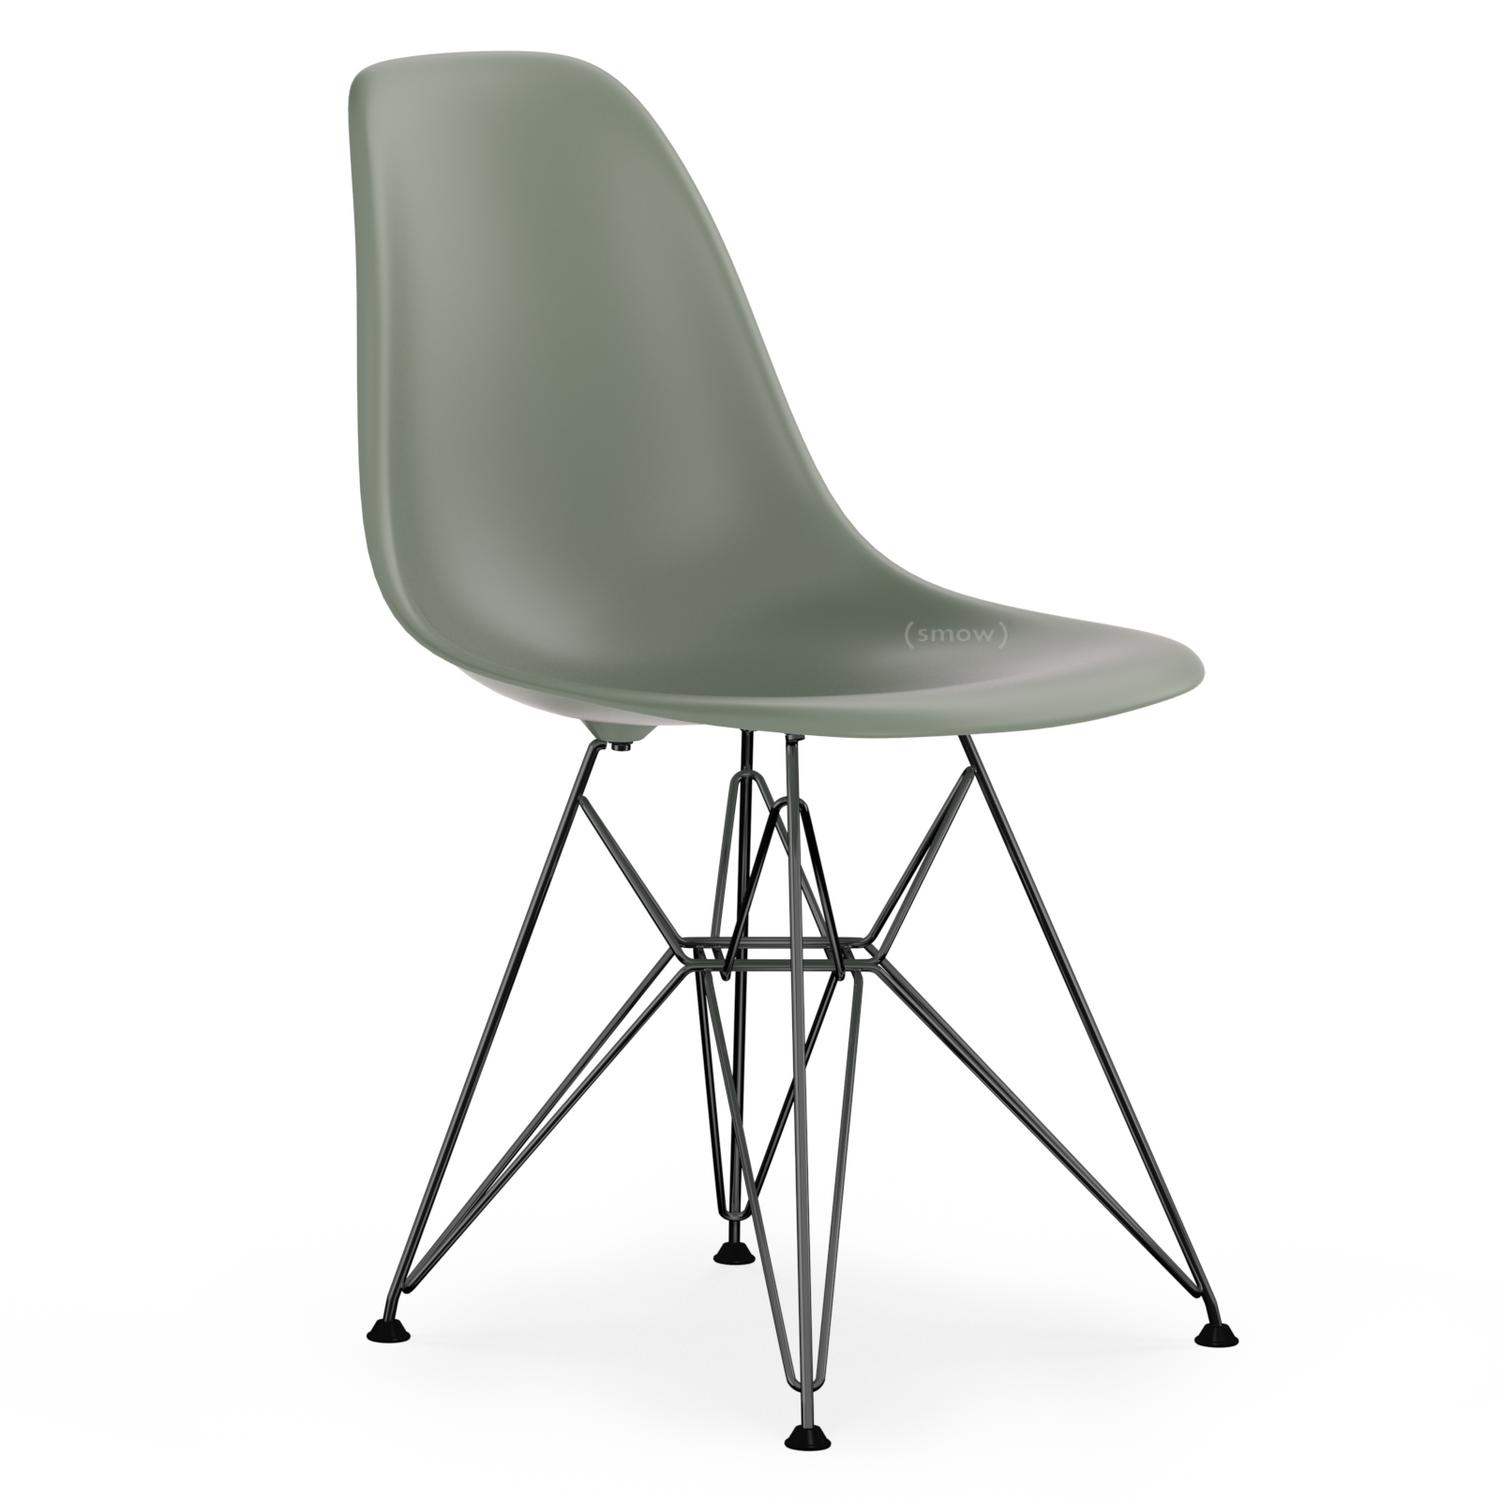 vitra eames plastic side chair dsr moss grey without upholstery without upholstery standard. Black Bedroom Furniture Sets. Home Design Ideas